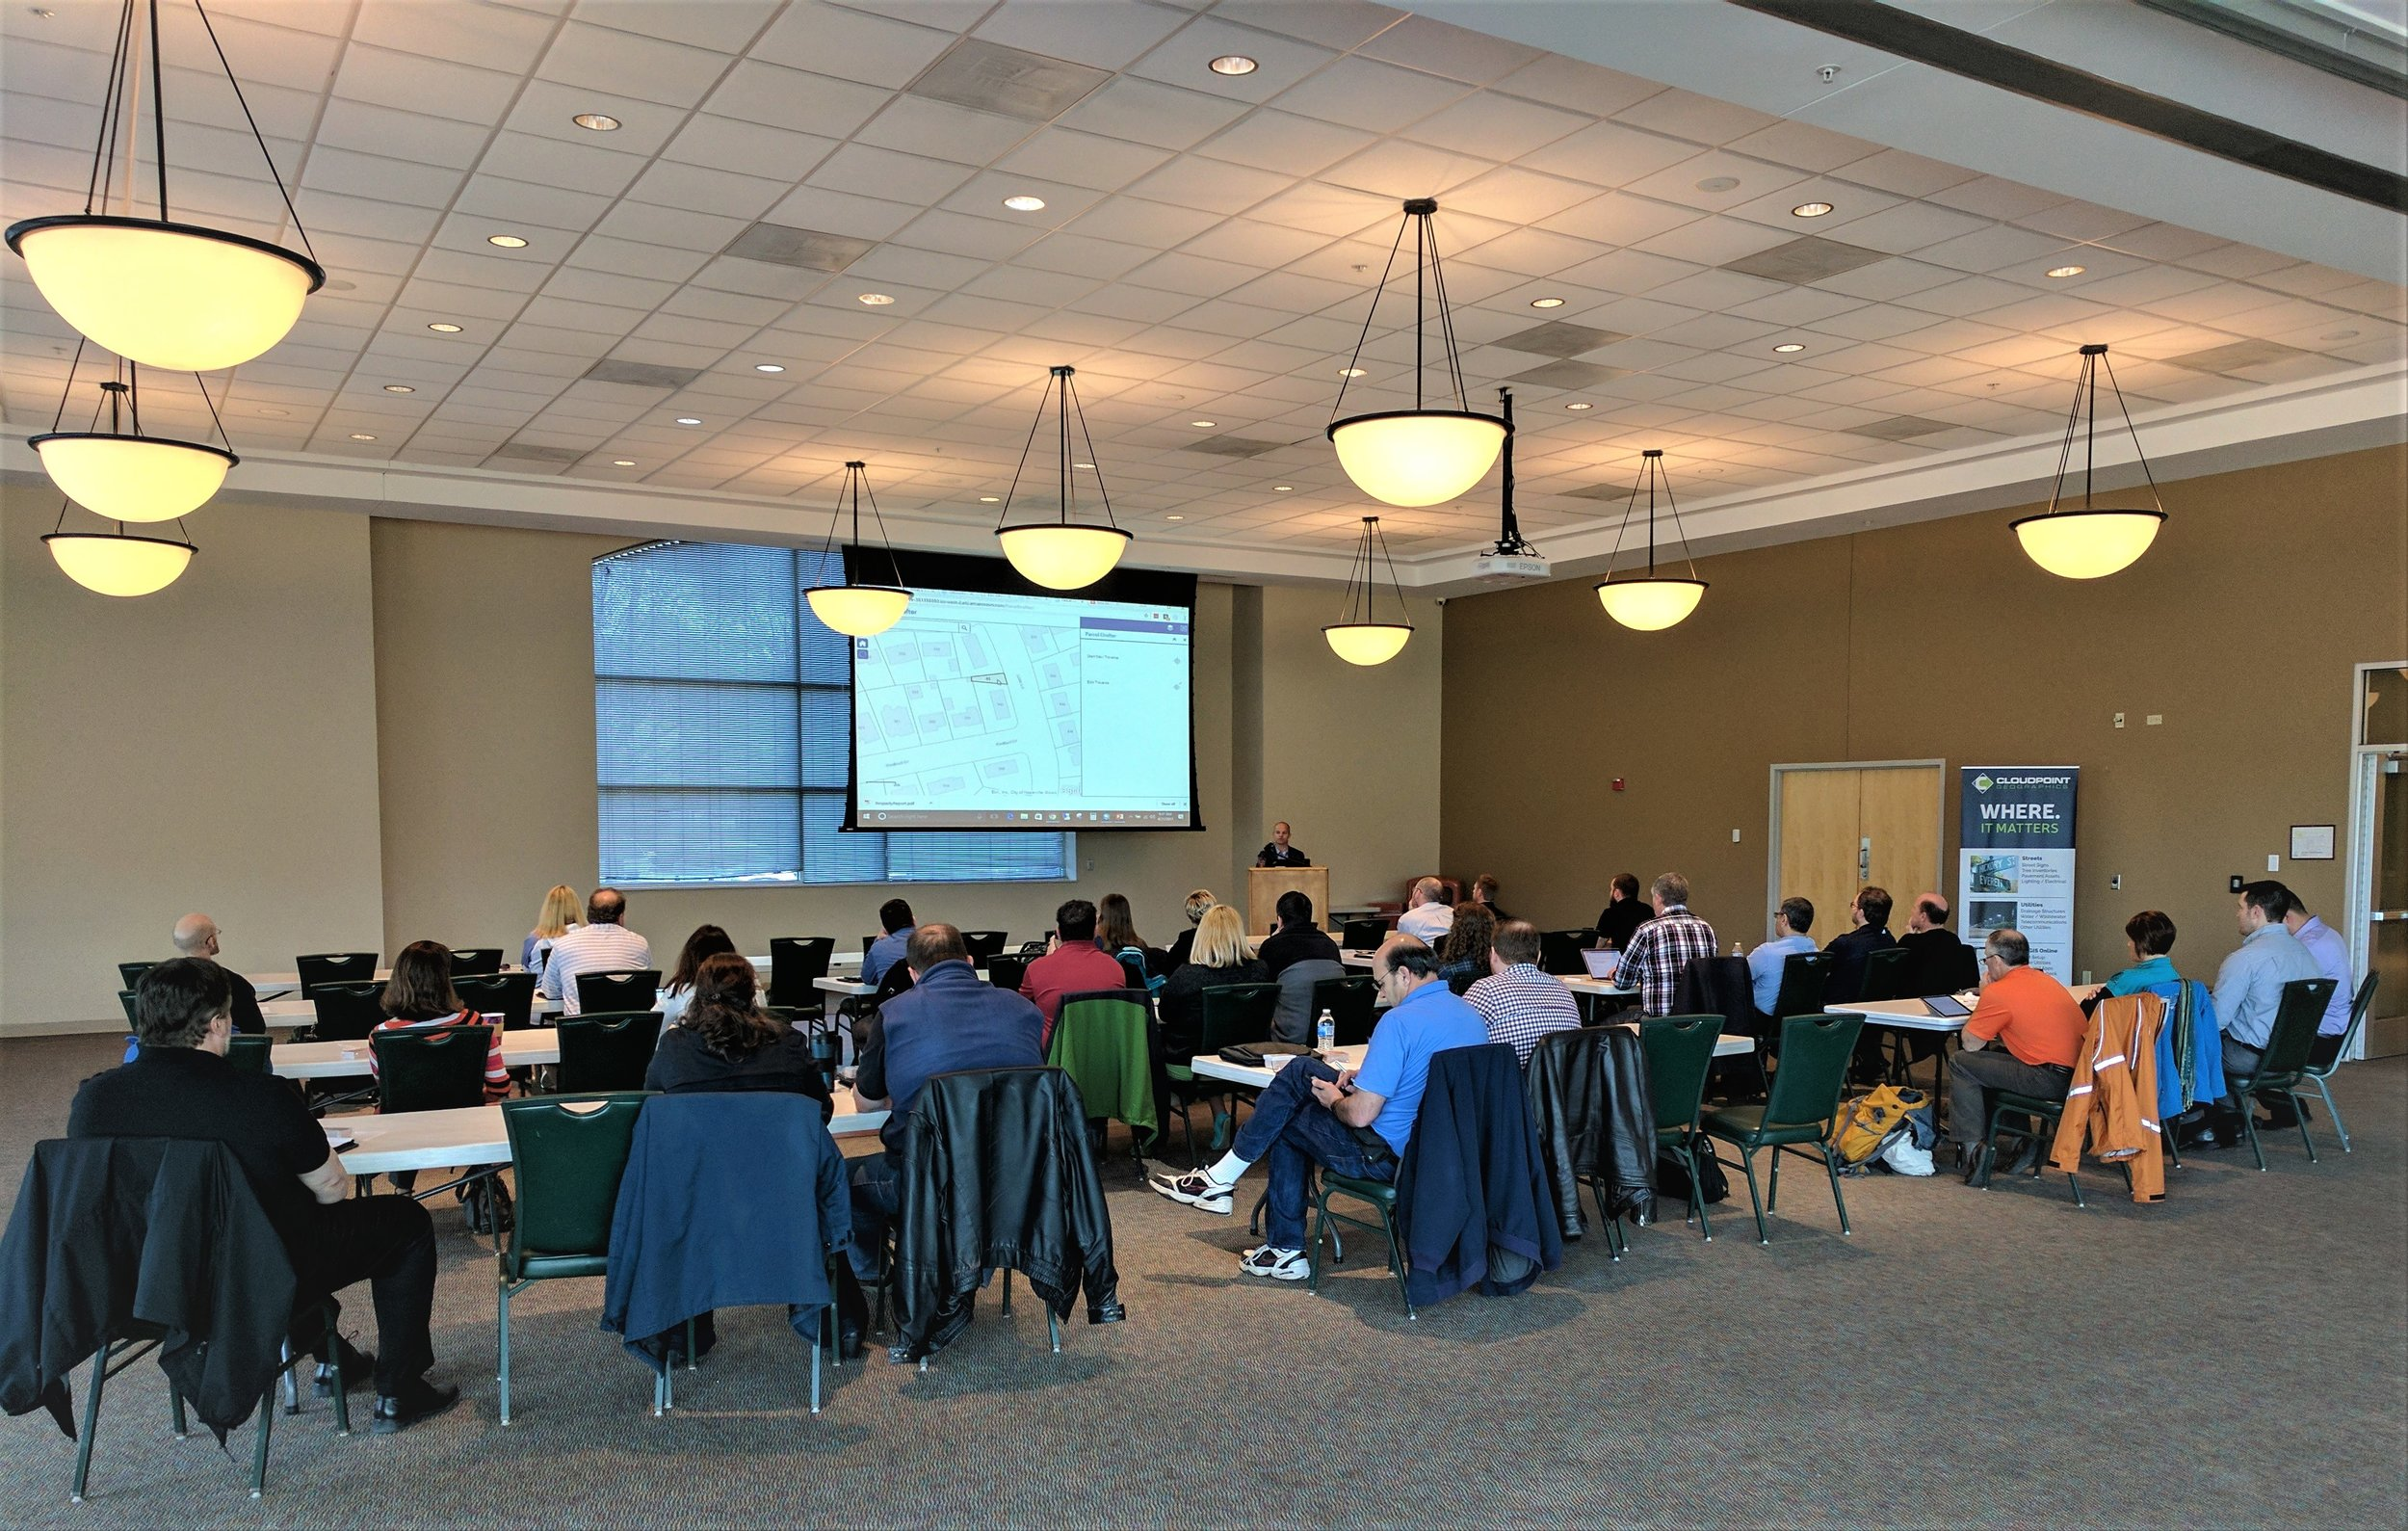 This past Friday, April 21st was another installment of our ArcGIS for Local Government Solutions Showcase in Elgin, IL. Thanks to all our participants and speakers who sacrificed a glorious day outside to talk GIS with us. Here are a few links and explanations to the topics that were covered.